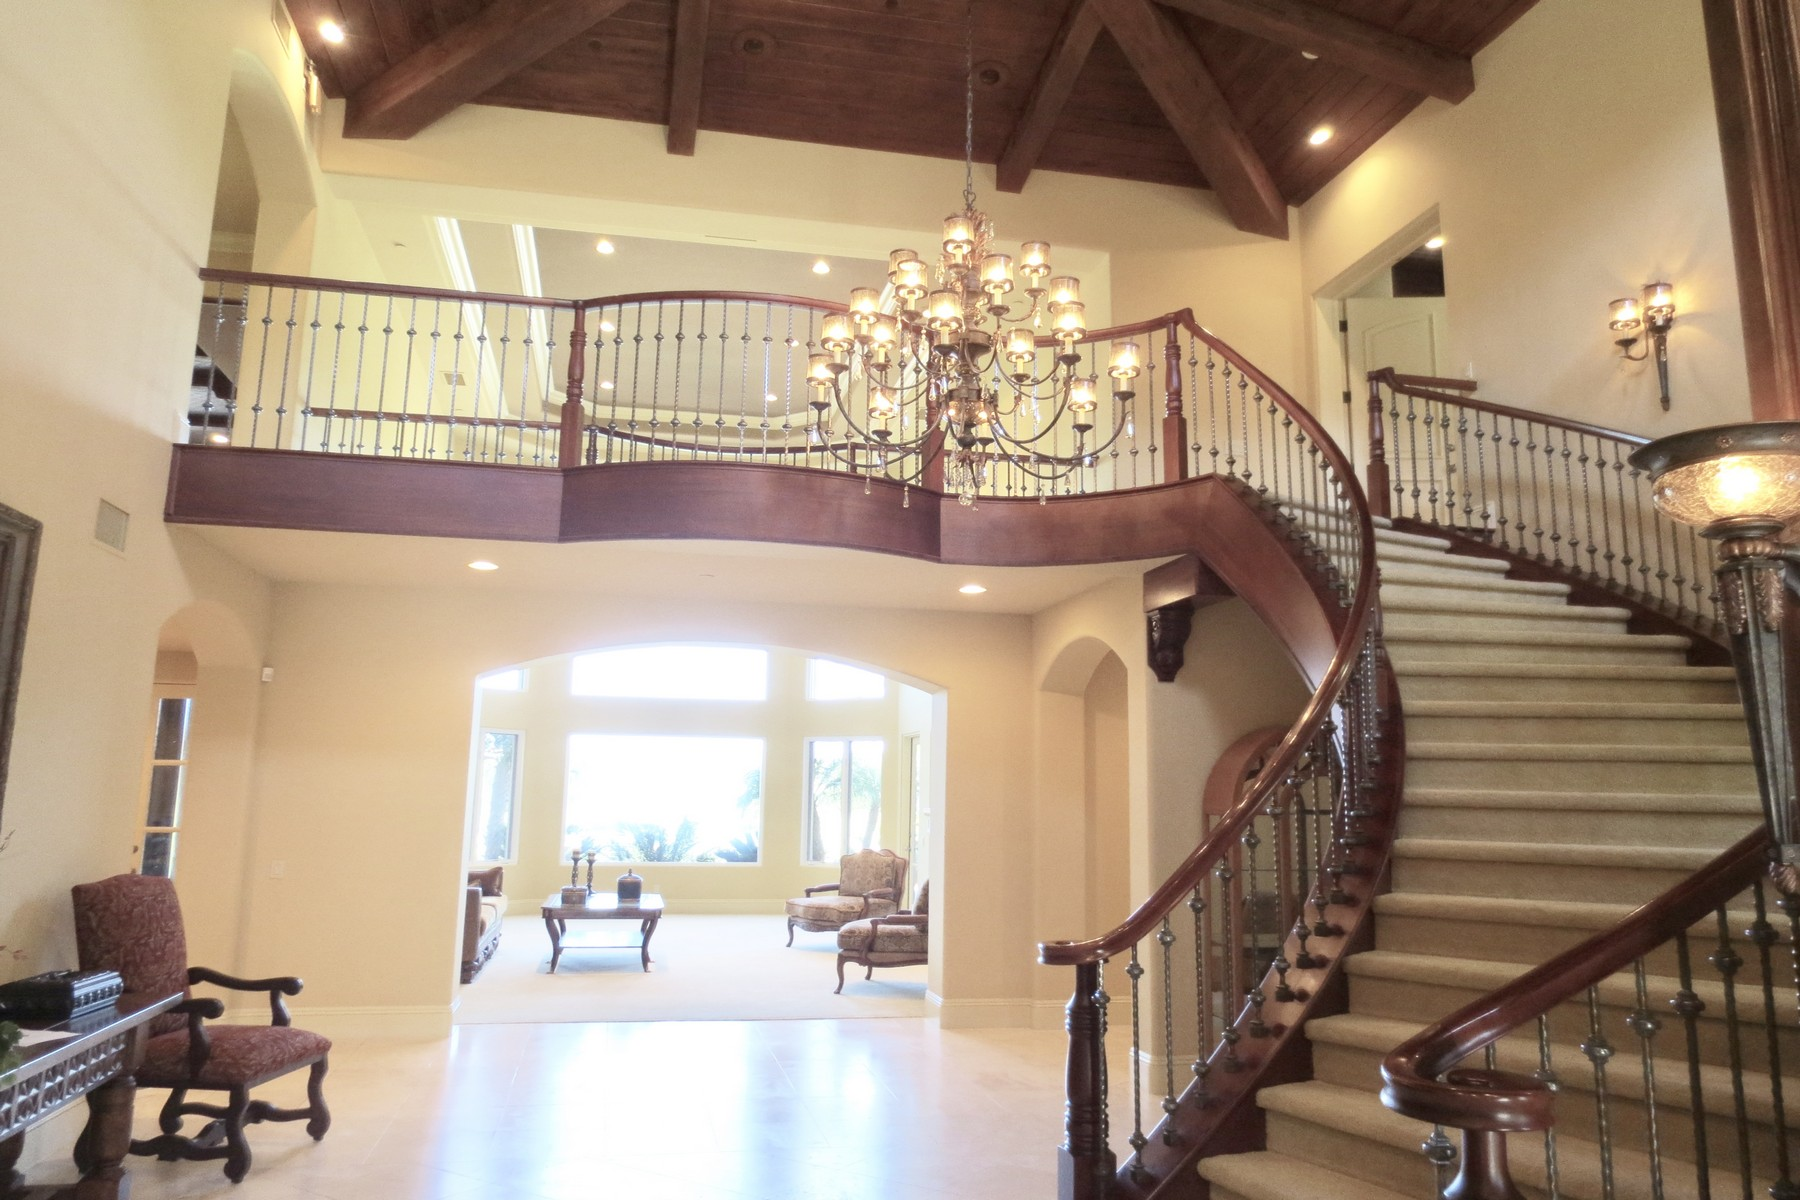 Additional photo for property listing at 18090 Old Coach Drive  Poway, California 92064 United States